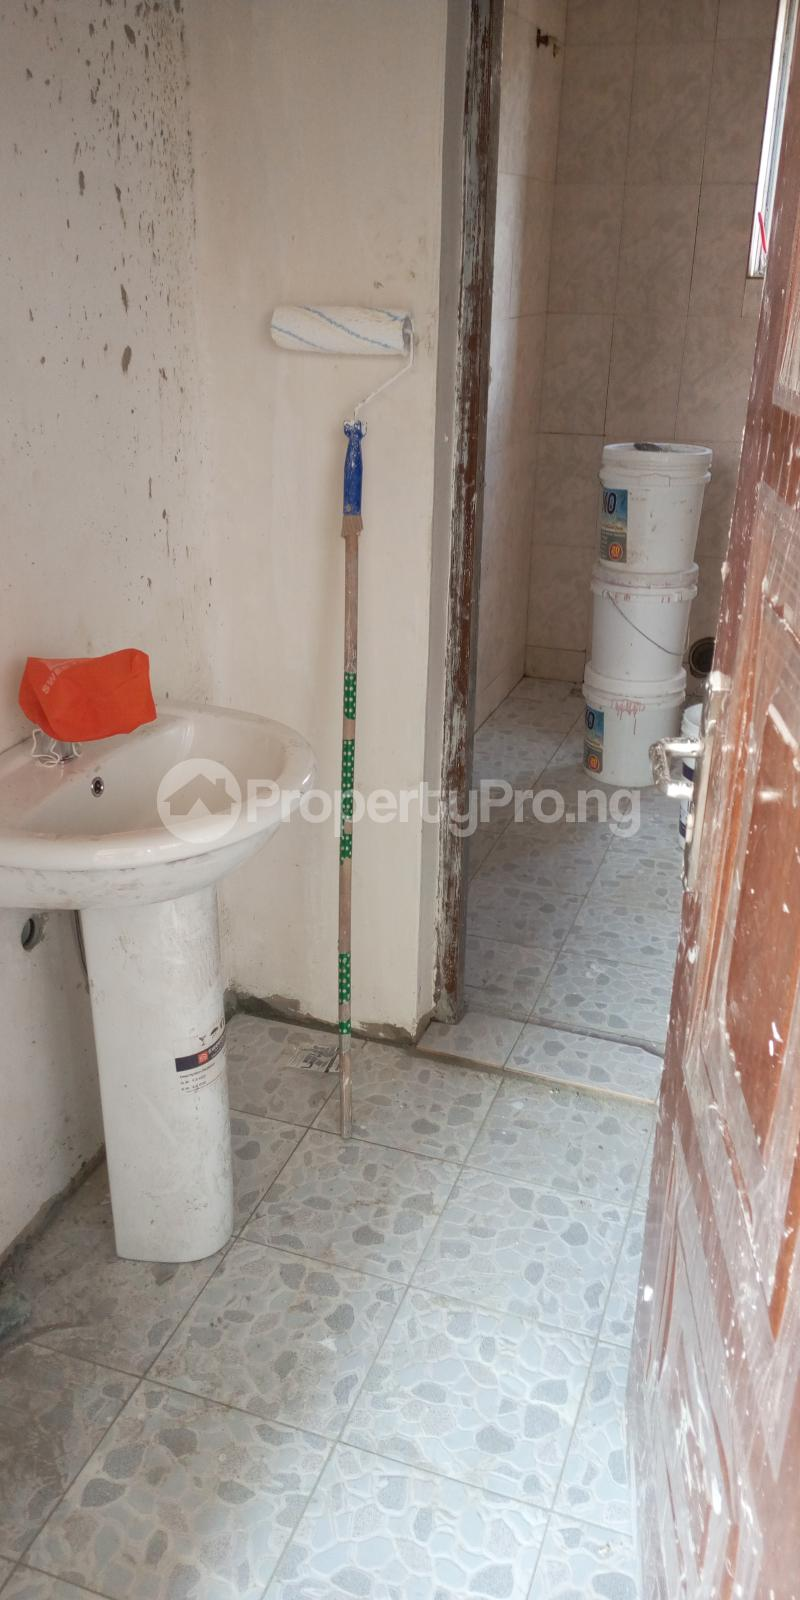 School Commercial Property for sale Eputu Ibeju-Lekki Lagos - 8